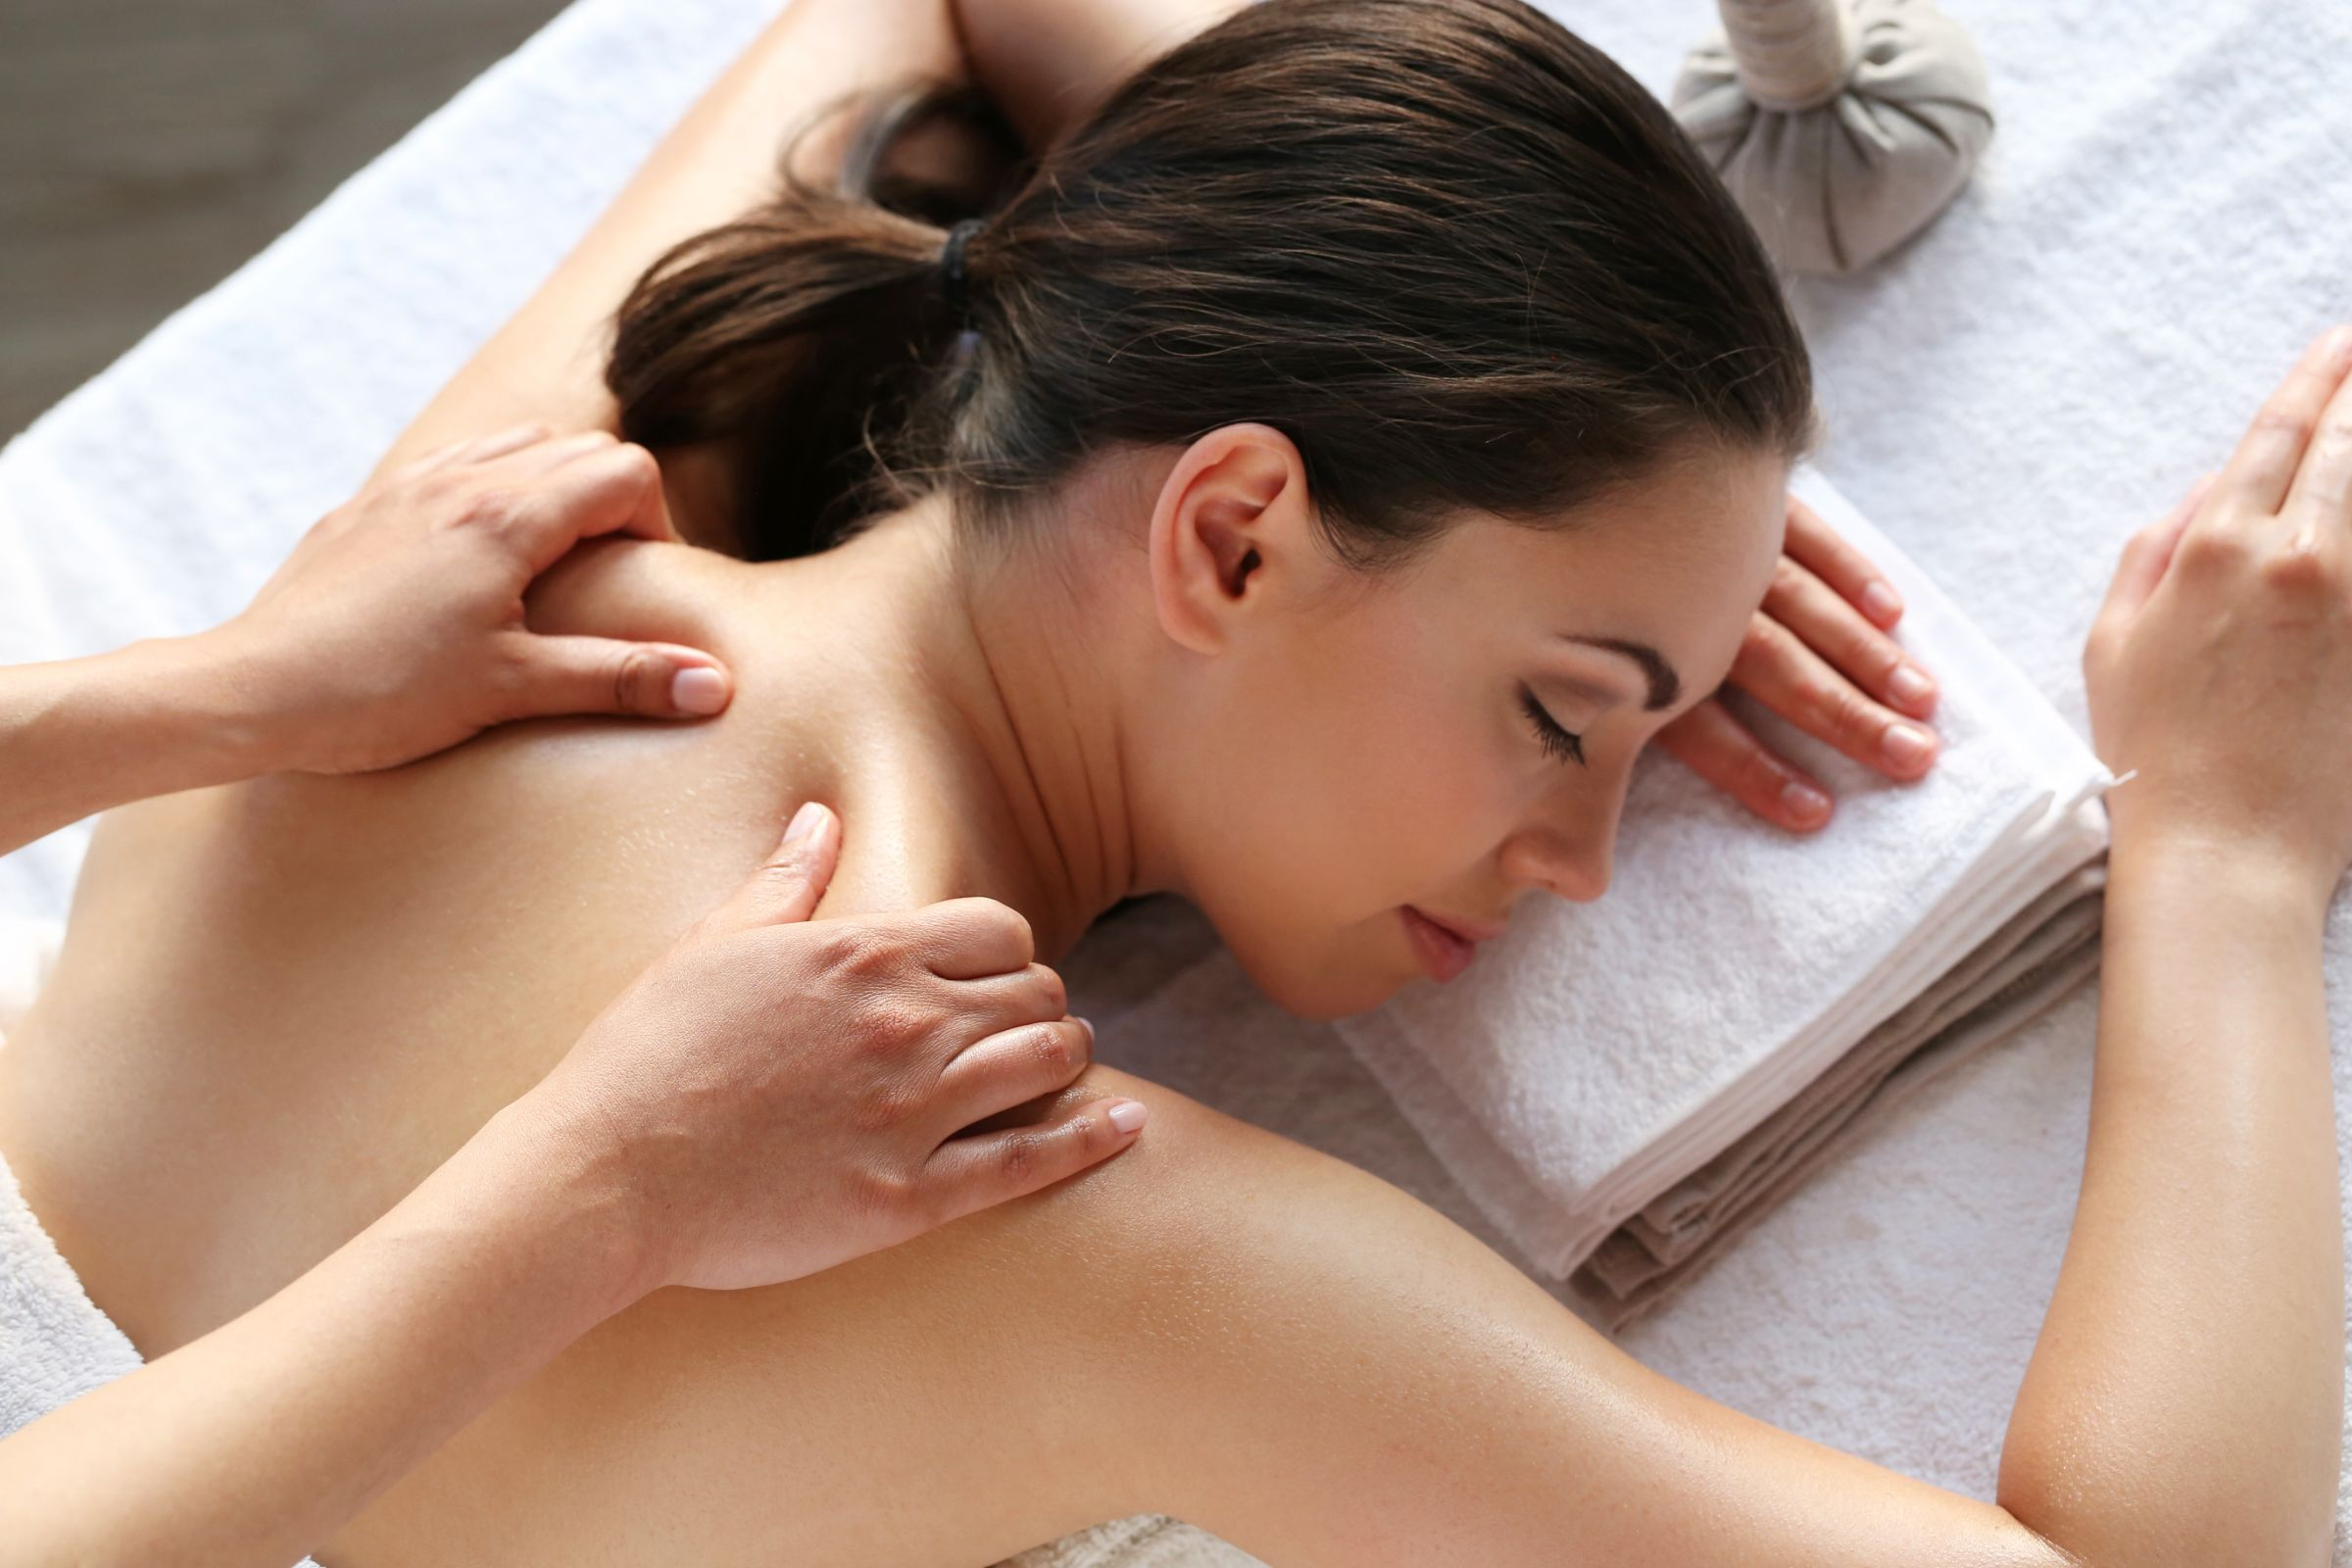 Female Model Having Massage Spa